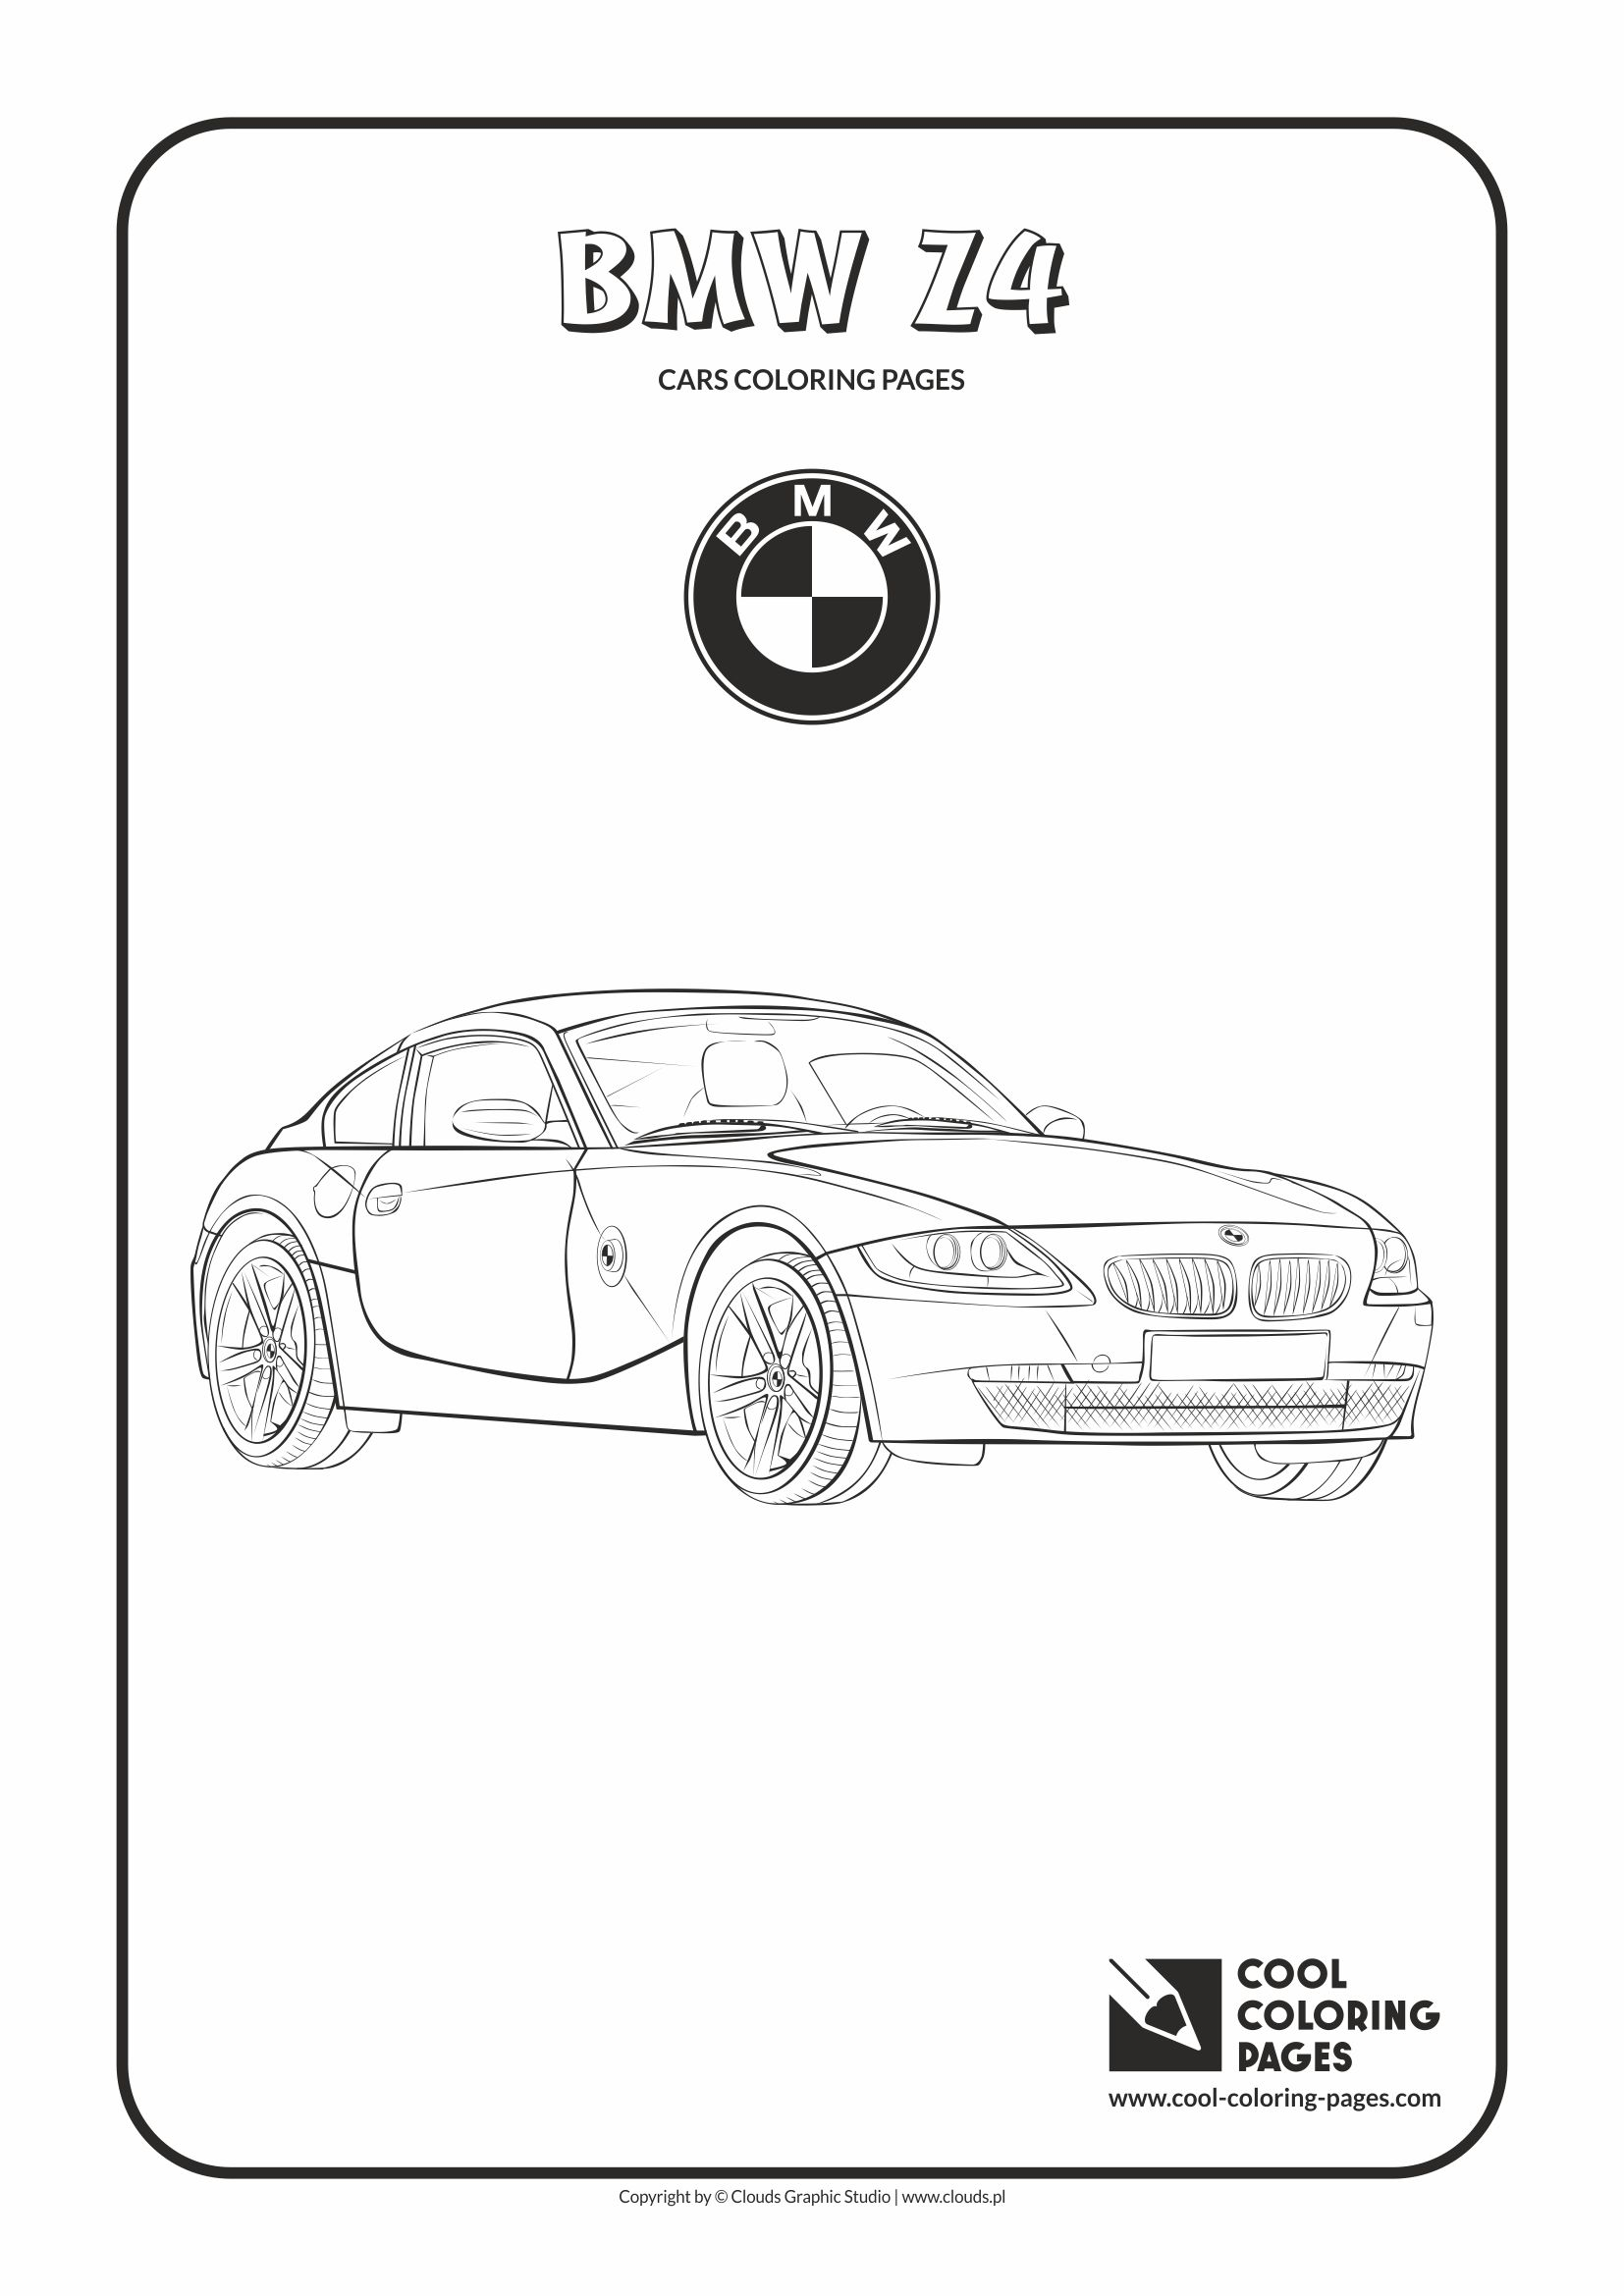 cool coloring pages vehicles bmw z4 coloring page with bmw z4 - Lamborghini Veneno Coloring Pages